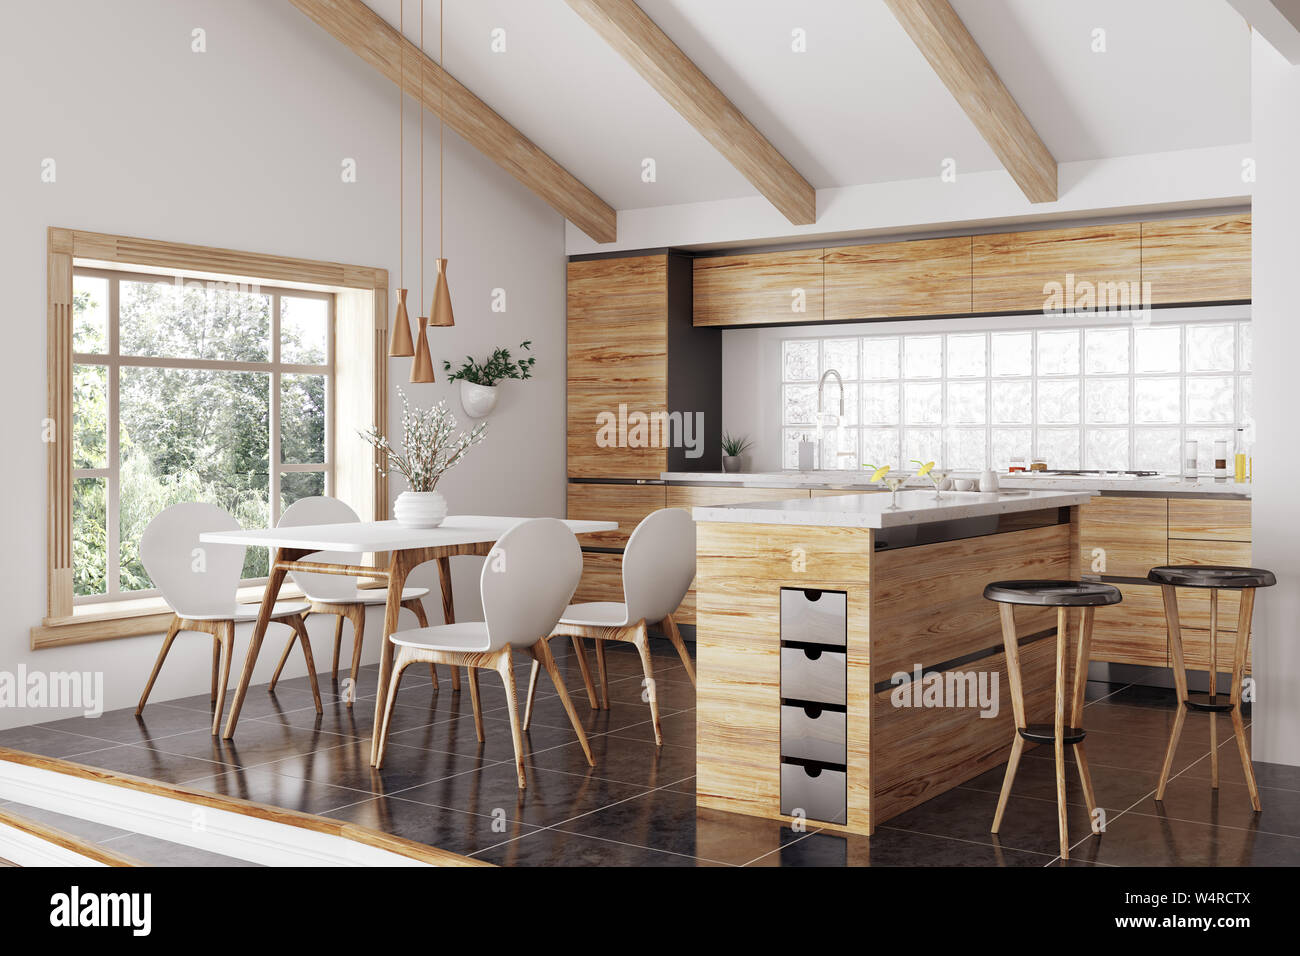 Modern interior of wooden kitchen with island, yellow and white